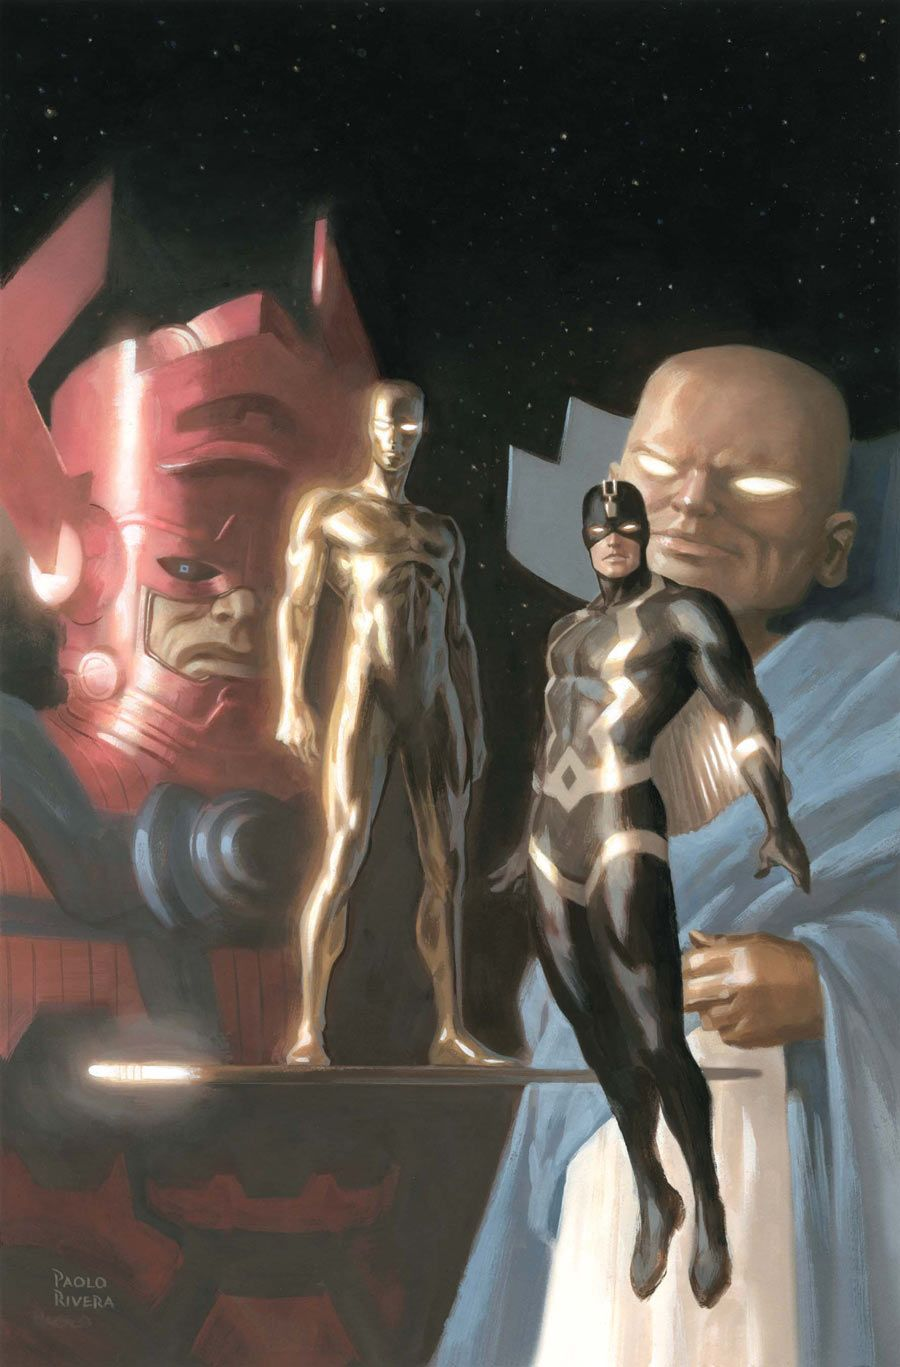 Fantastic Four (Galactus, Silver Surfer, Black Bolt & Watcher) by Paolo Rivera